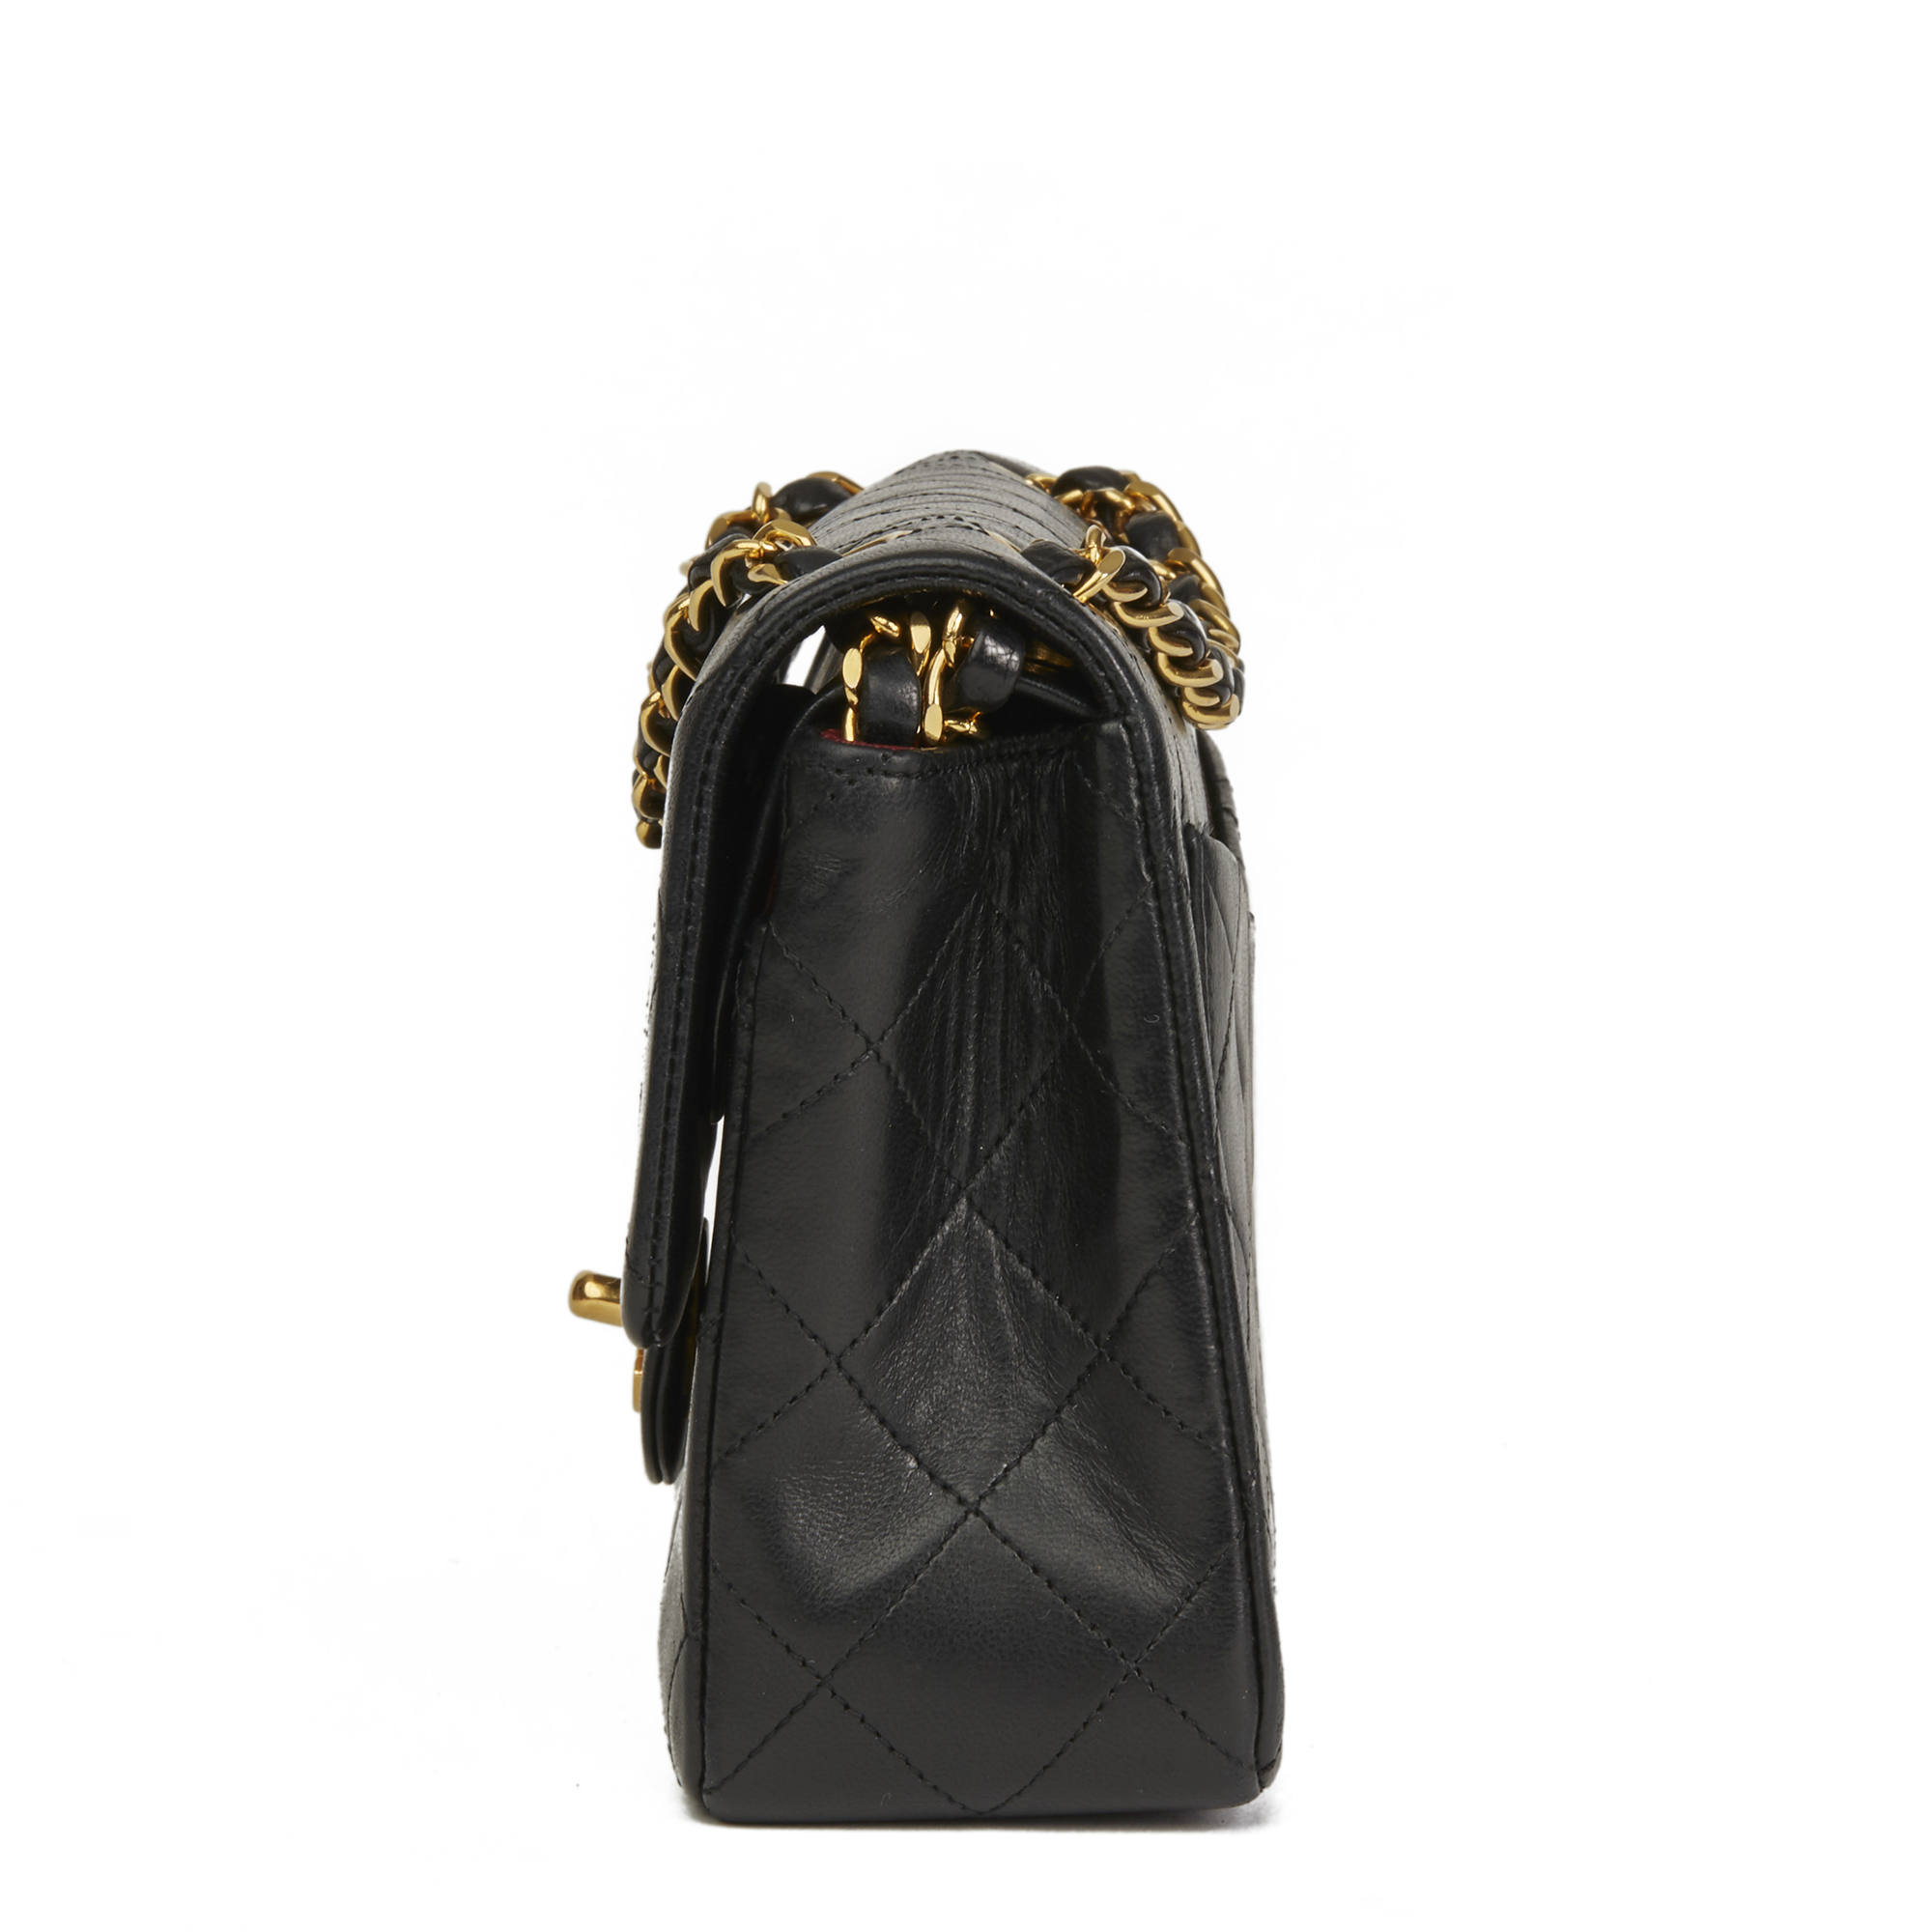 5900db1b473af4 Chanel Black Quilted Lambskin Vintage Small Classic Double Flap Bag Hb2666  2 2 of 11 ...